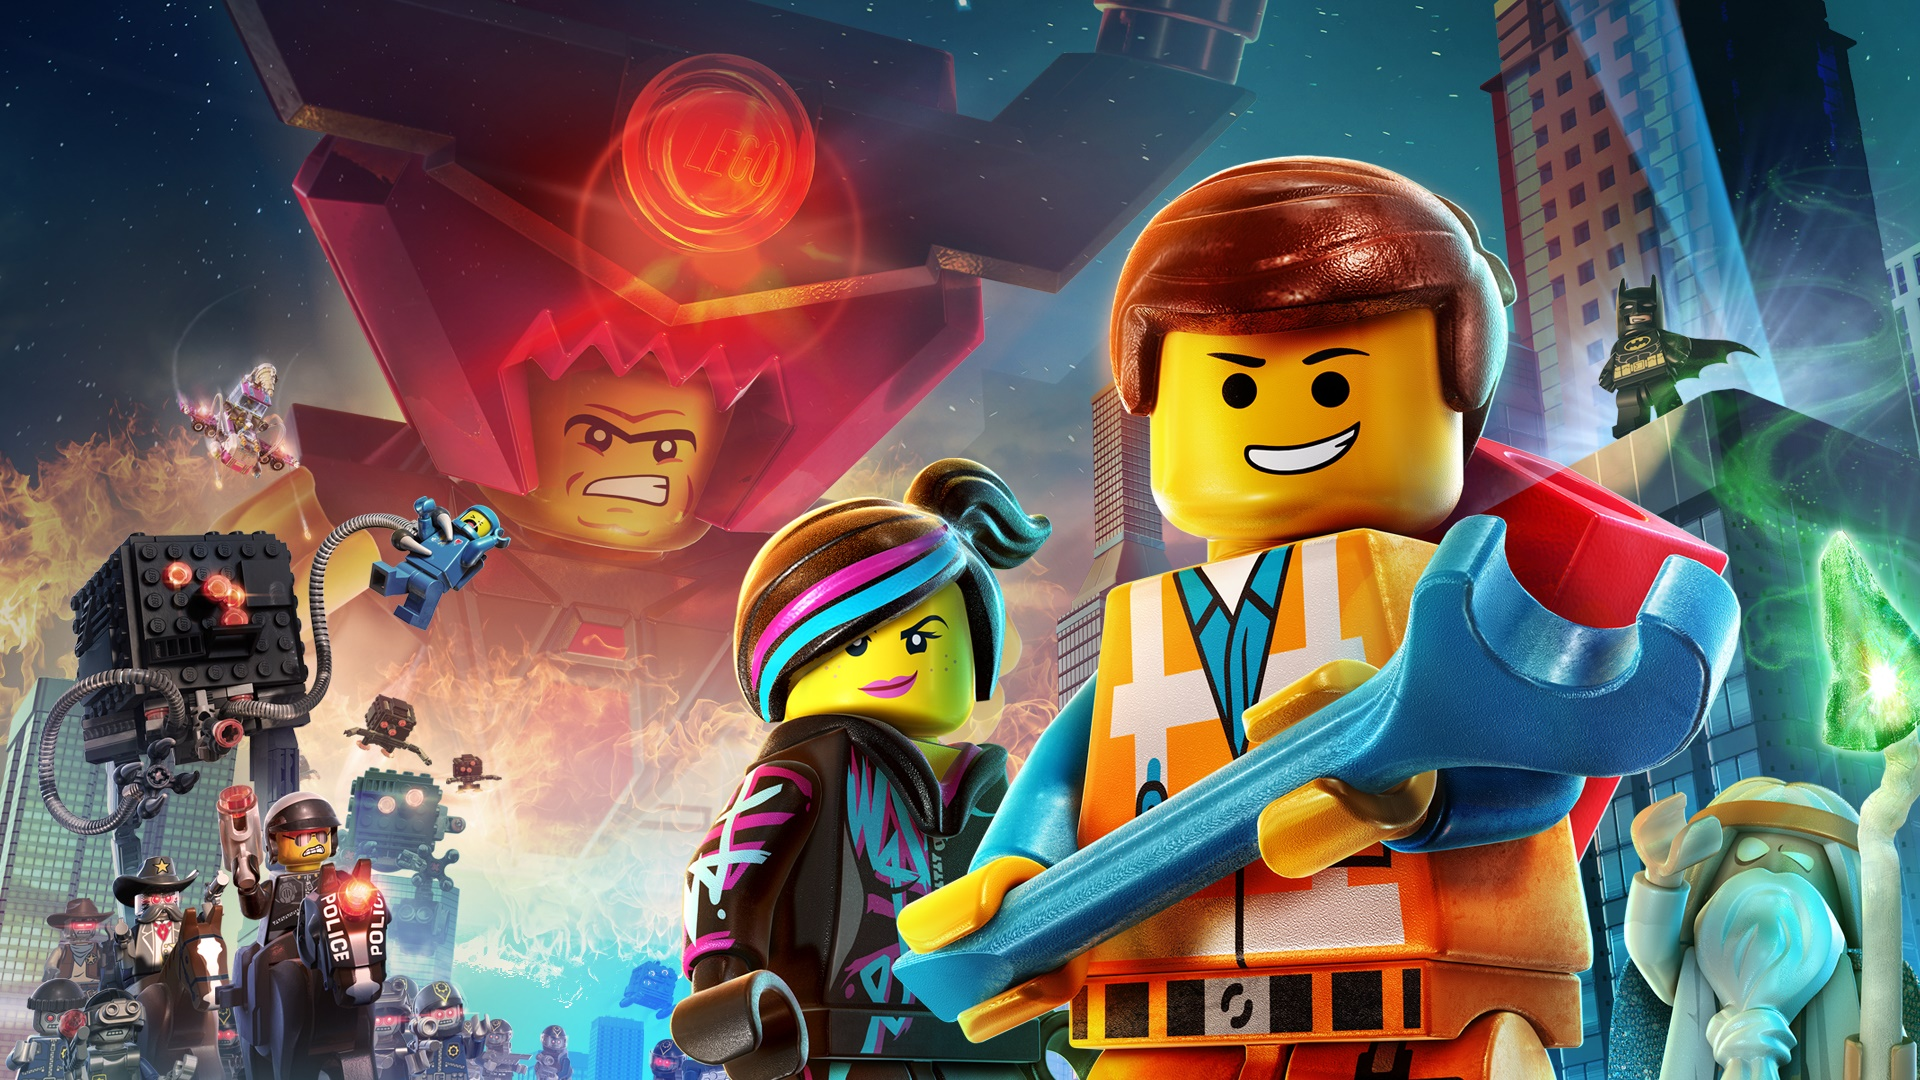 The Lego Movie 2014 Movie 1151.15 Kb